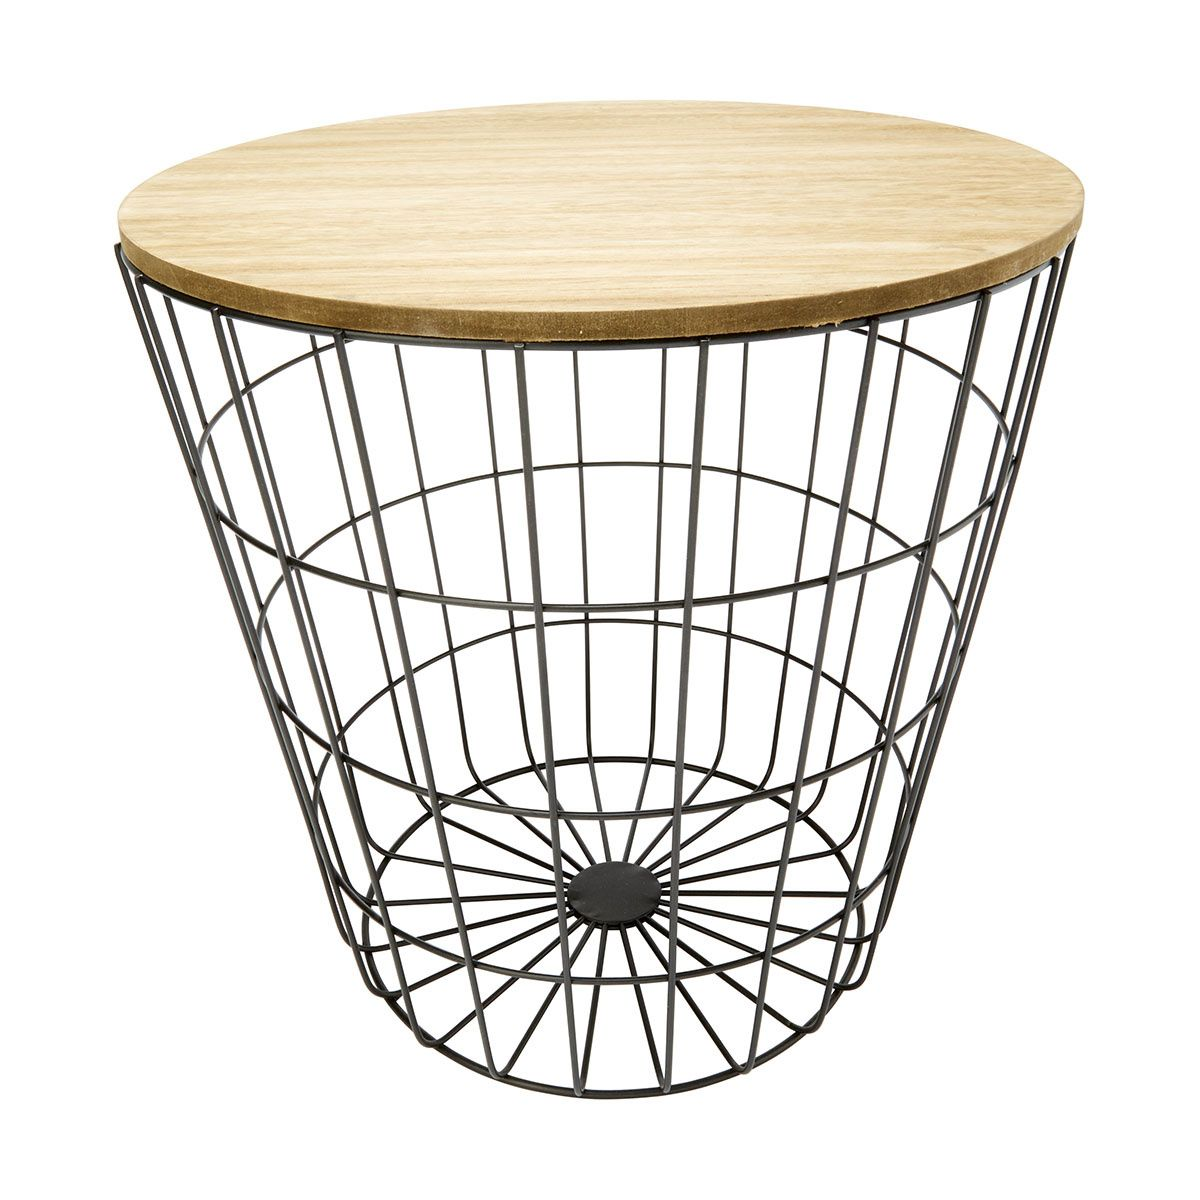 Storage wire basket table natural look black wire basket storage wire basket table natural look black kmart greentooth Image collections